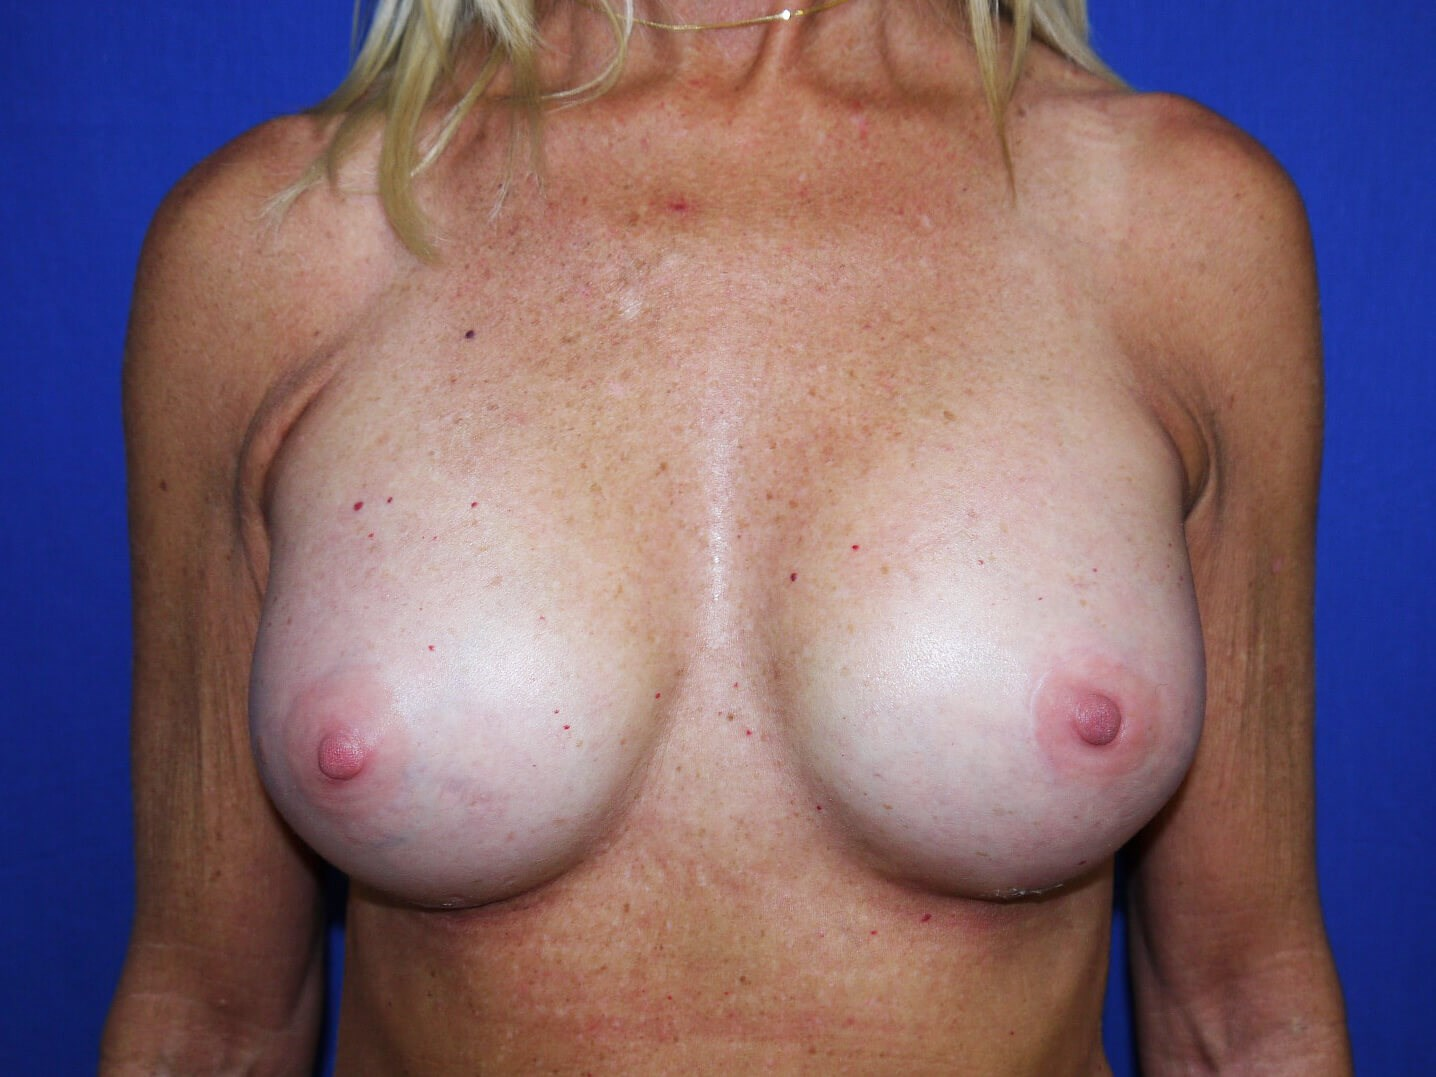 Breast Augmentation Results After Implants